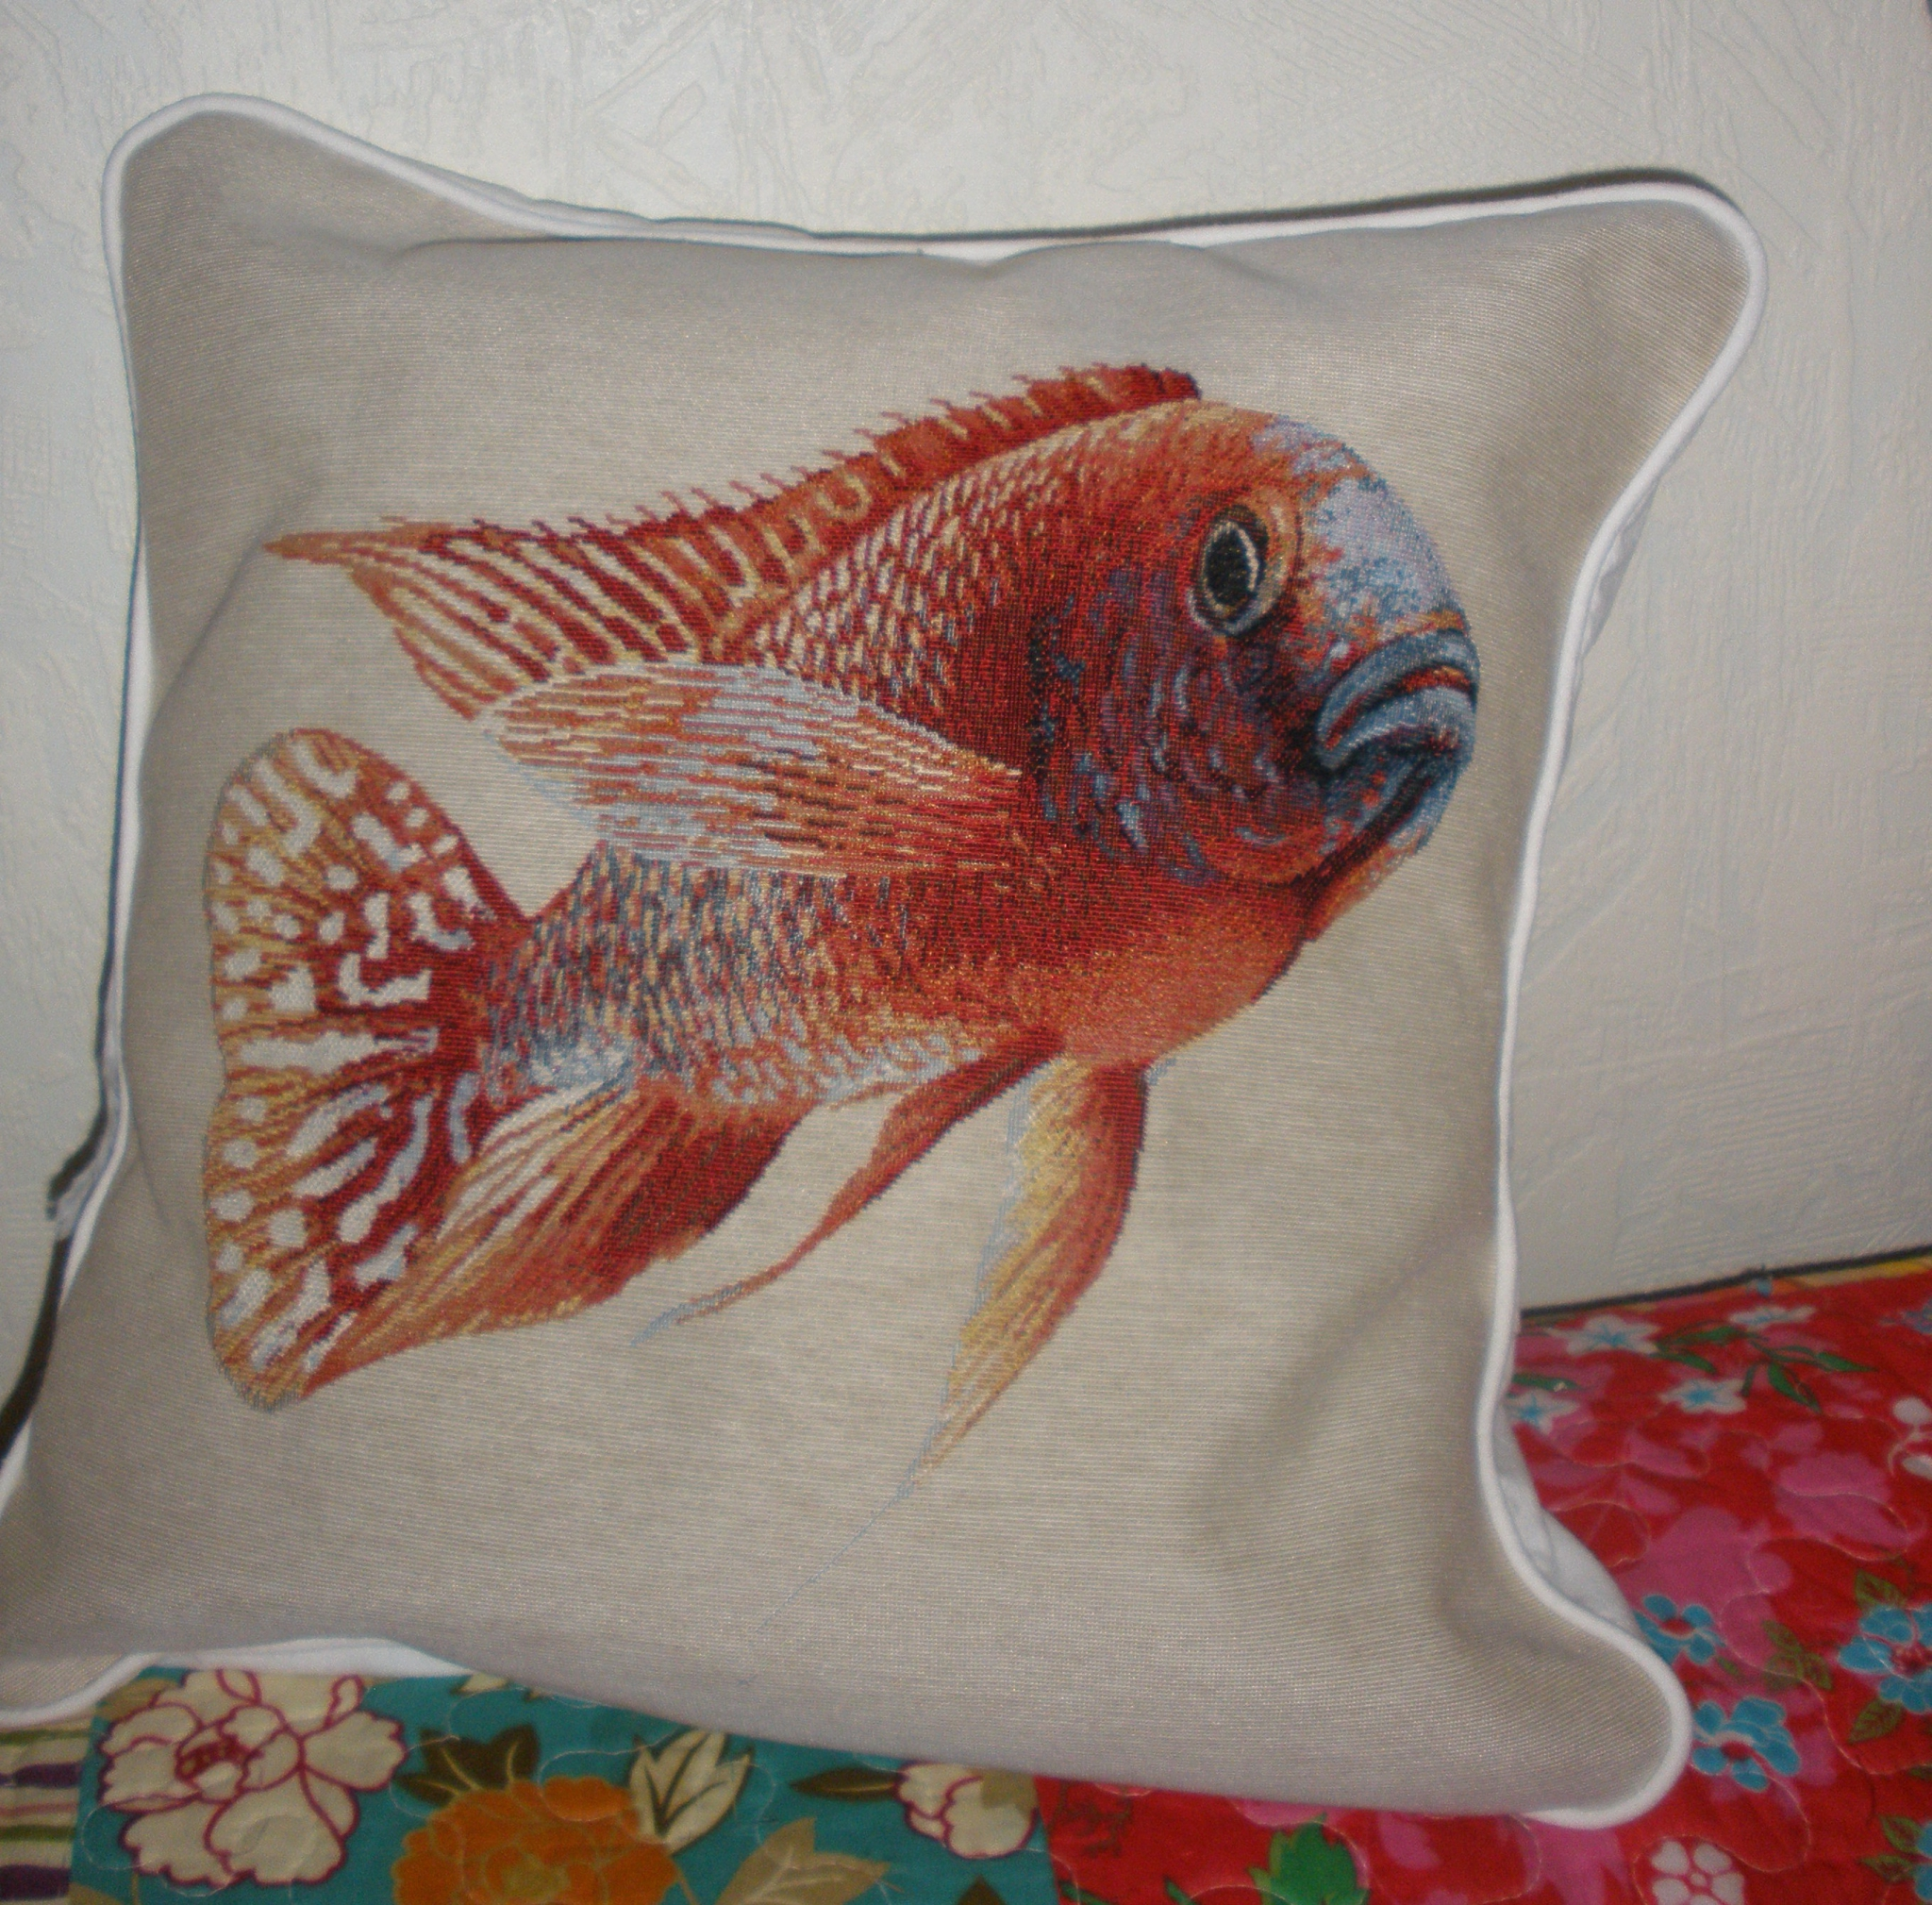 couture, passepoil, initiation, coussin,escargot, chat, poisson, canevas